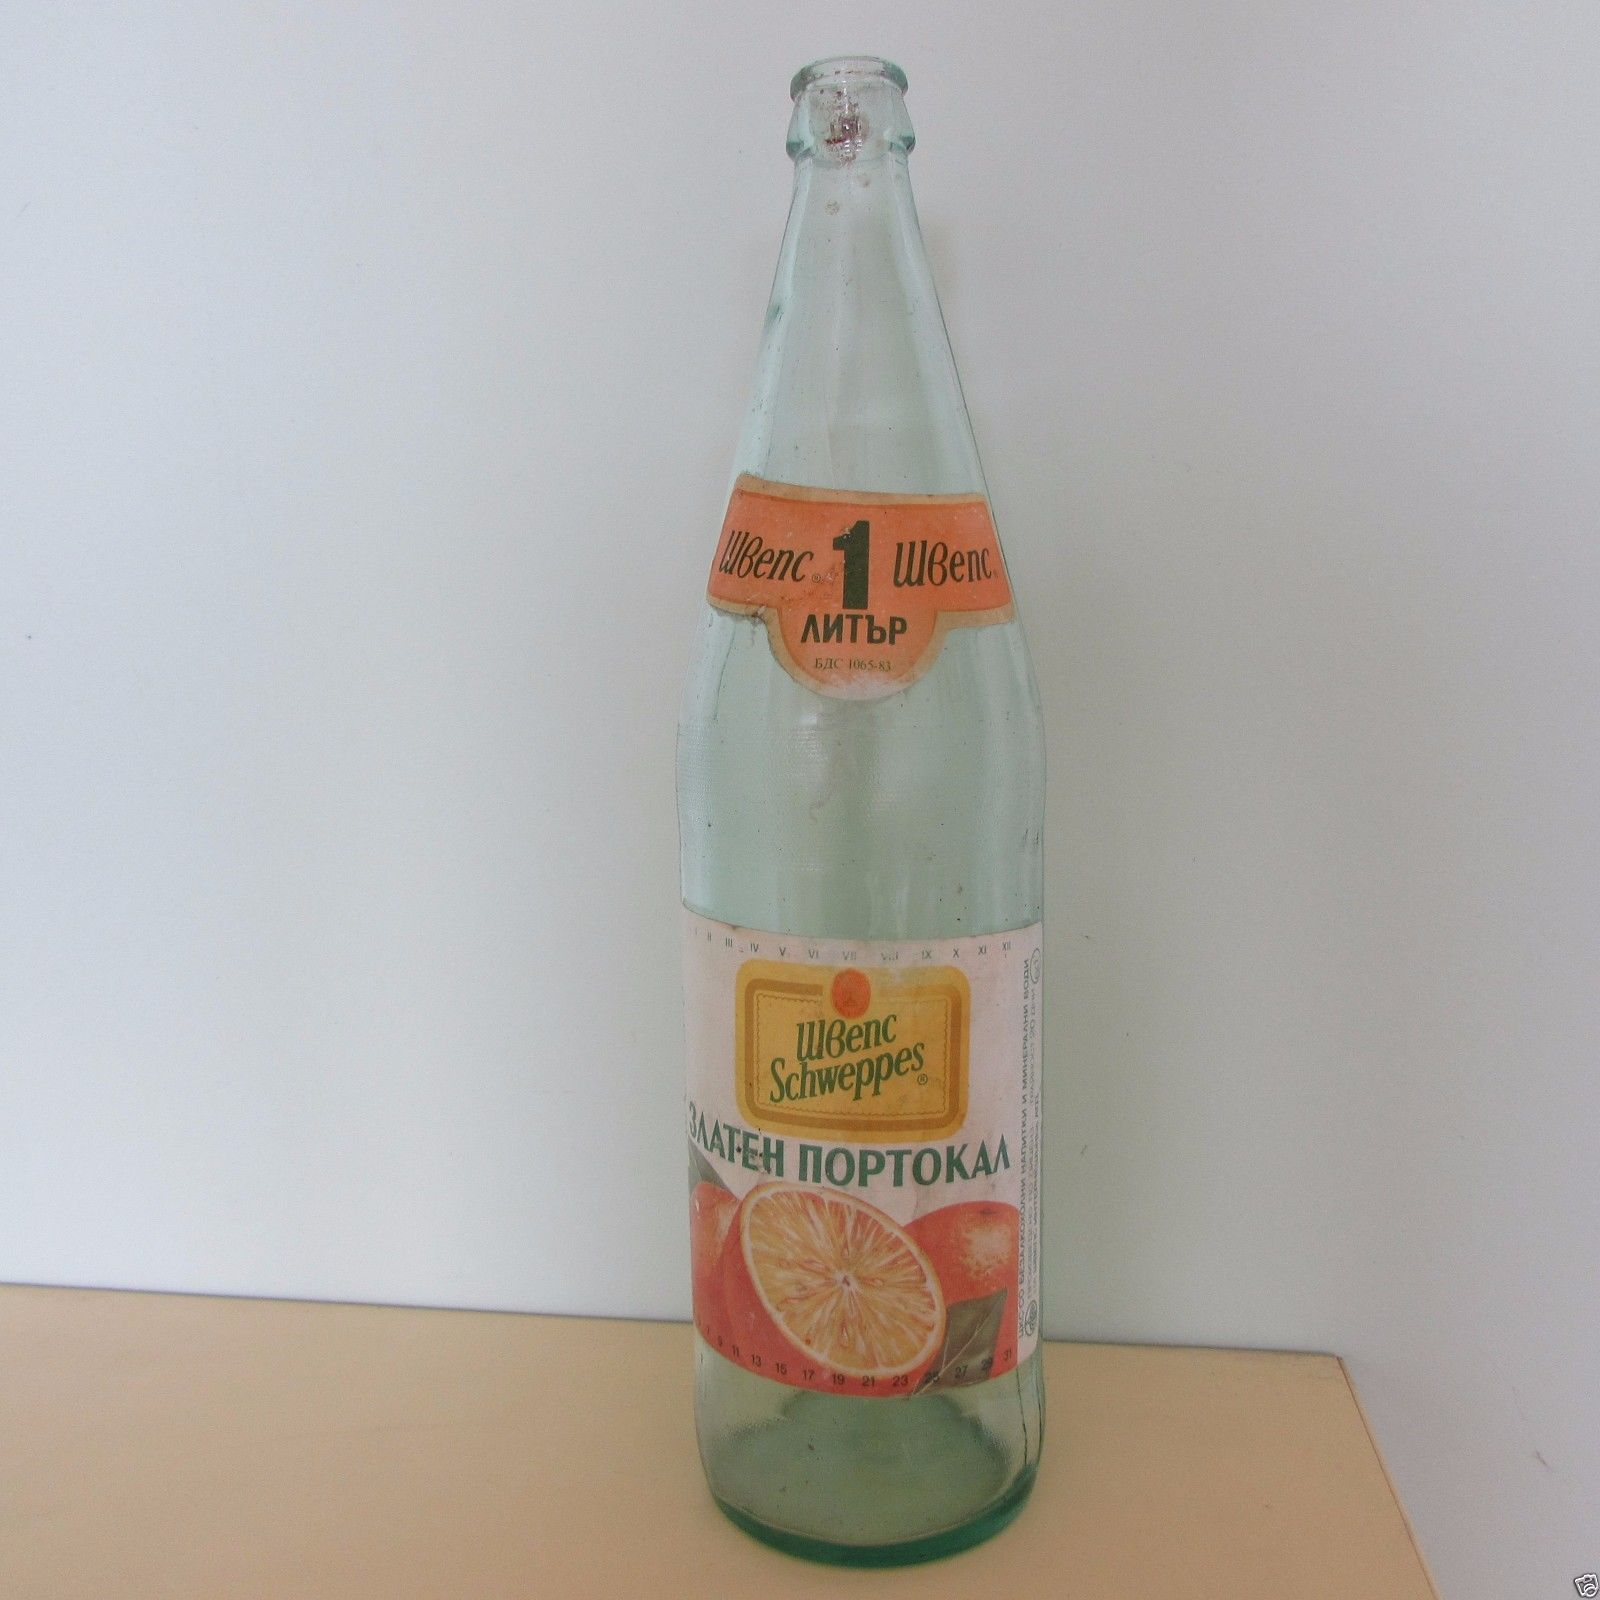 Collectable Schweppes Bottle Vintage 1 Liter Bulgaria Cyrillic Letters Ultra | eBay